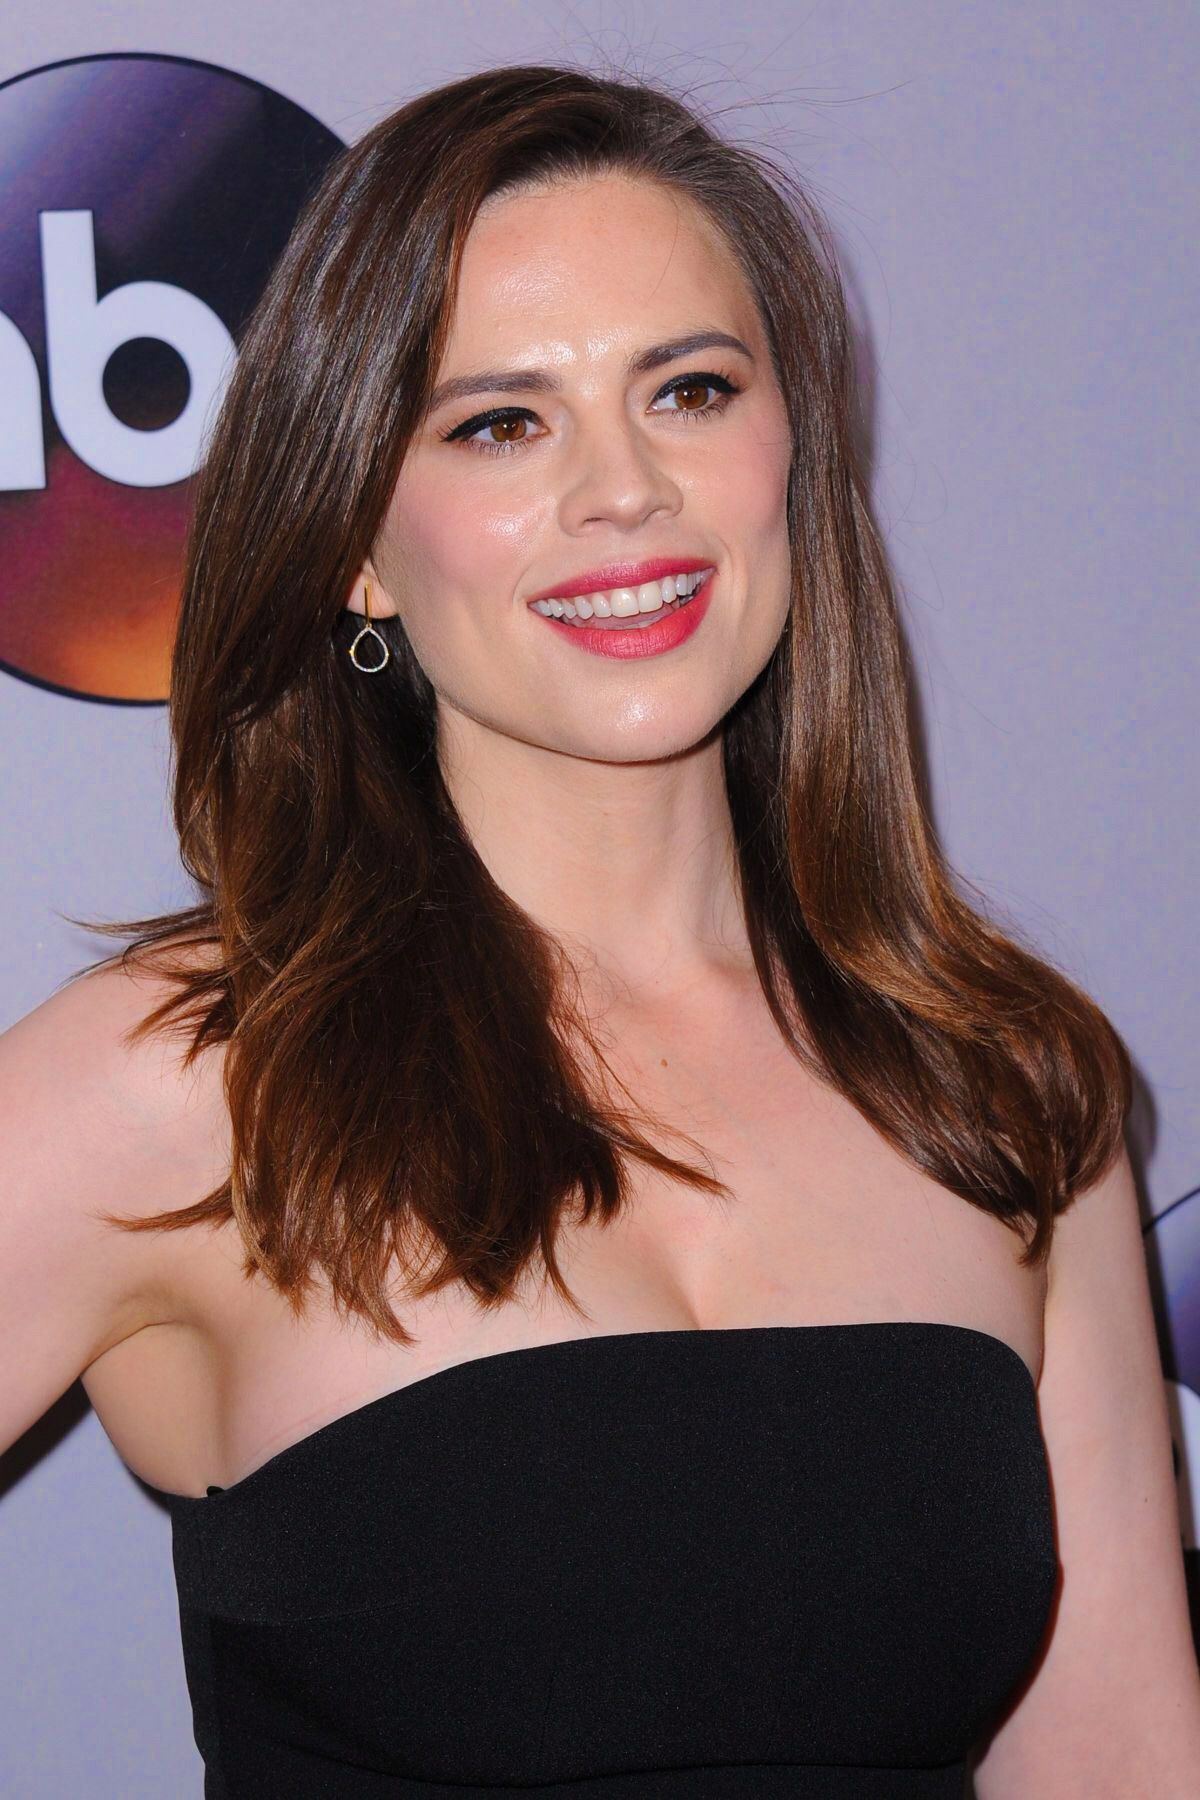 Hayley Atwell unbelievable in 2018 she turned 36 4/5/92